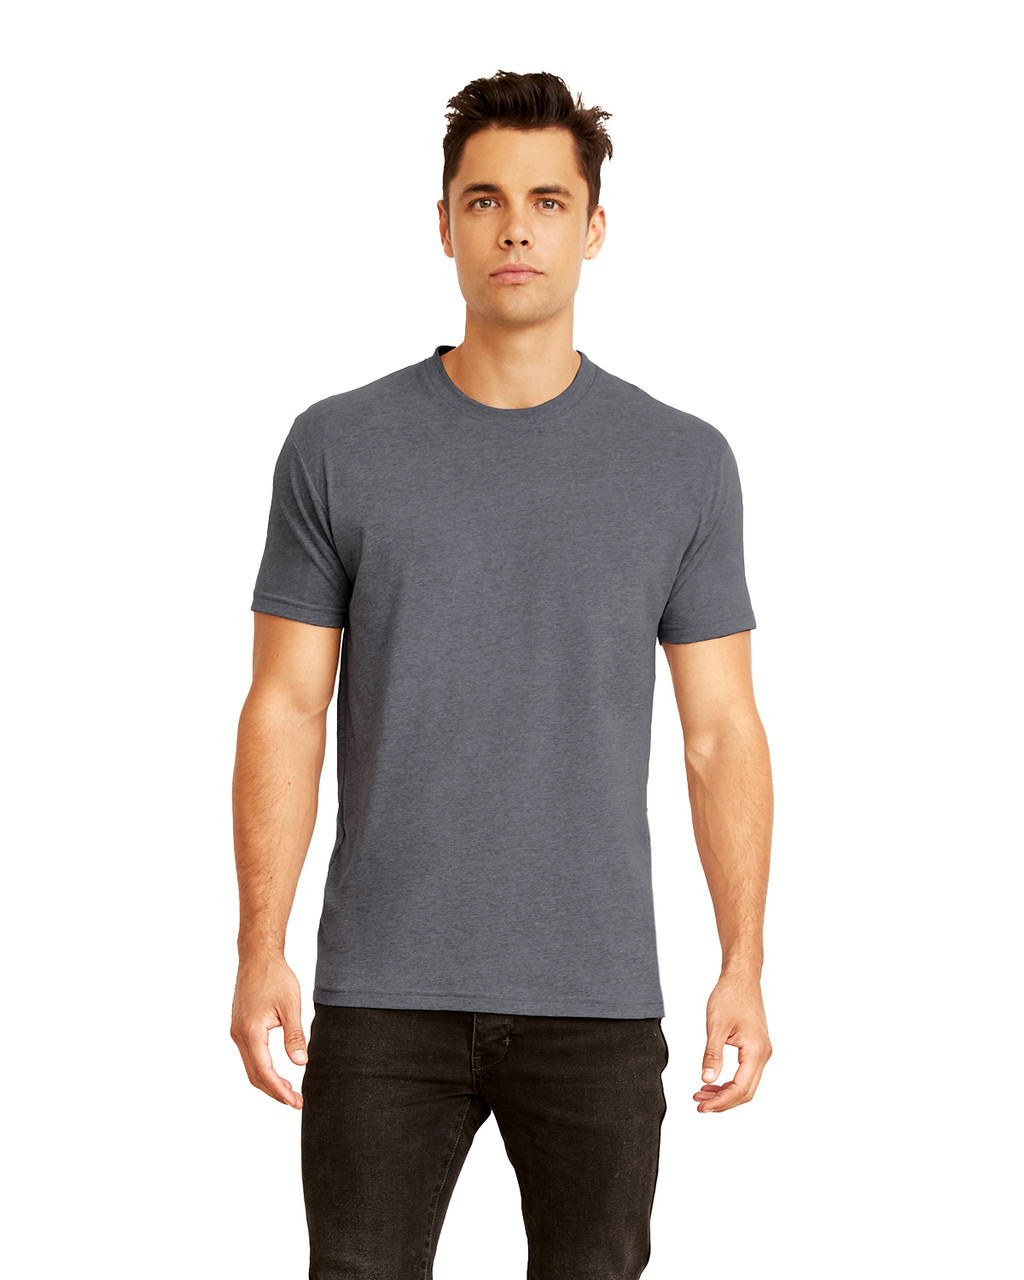 Heather Metal - 6410 Next Level Men's Premium Fitted Sueded T-Shirt | Blankclothing.ca